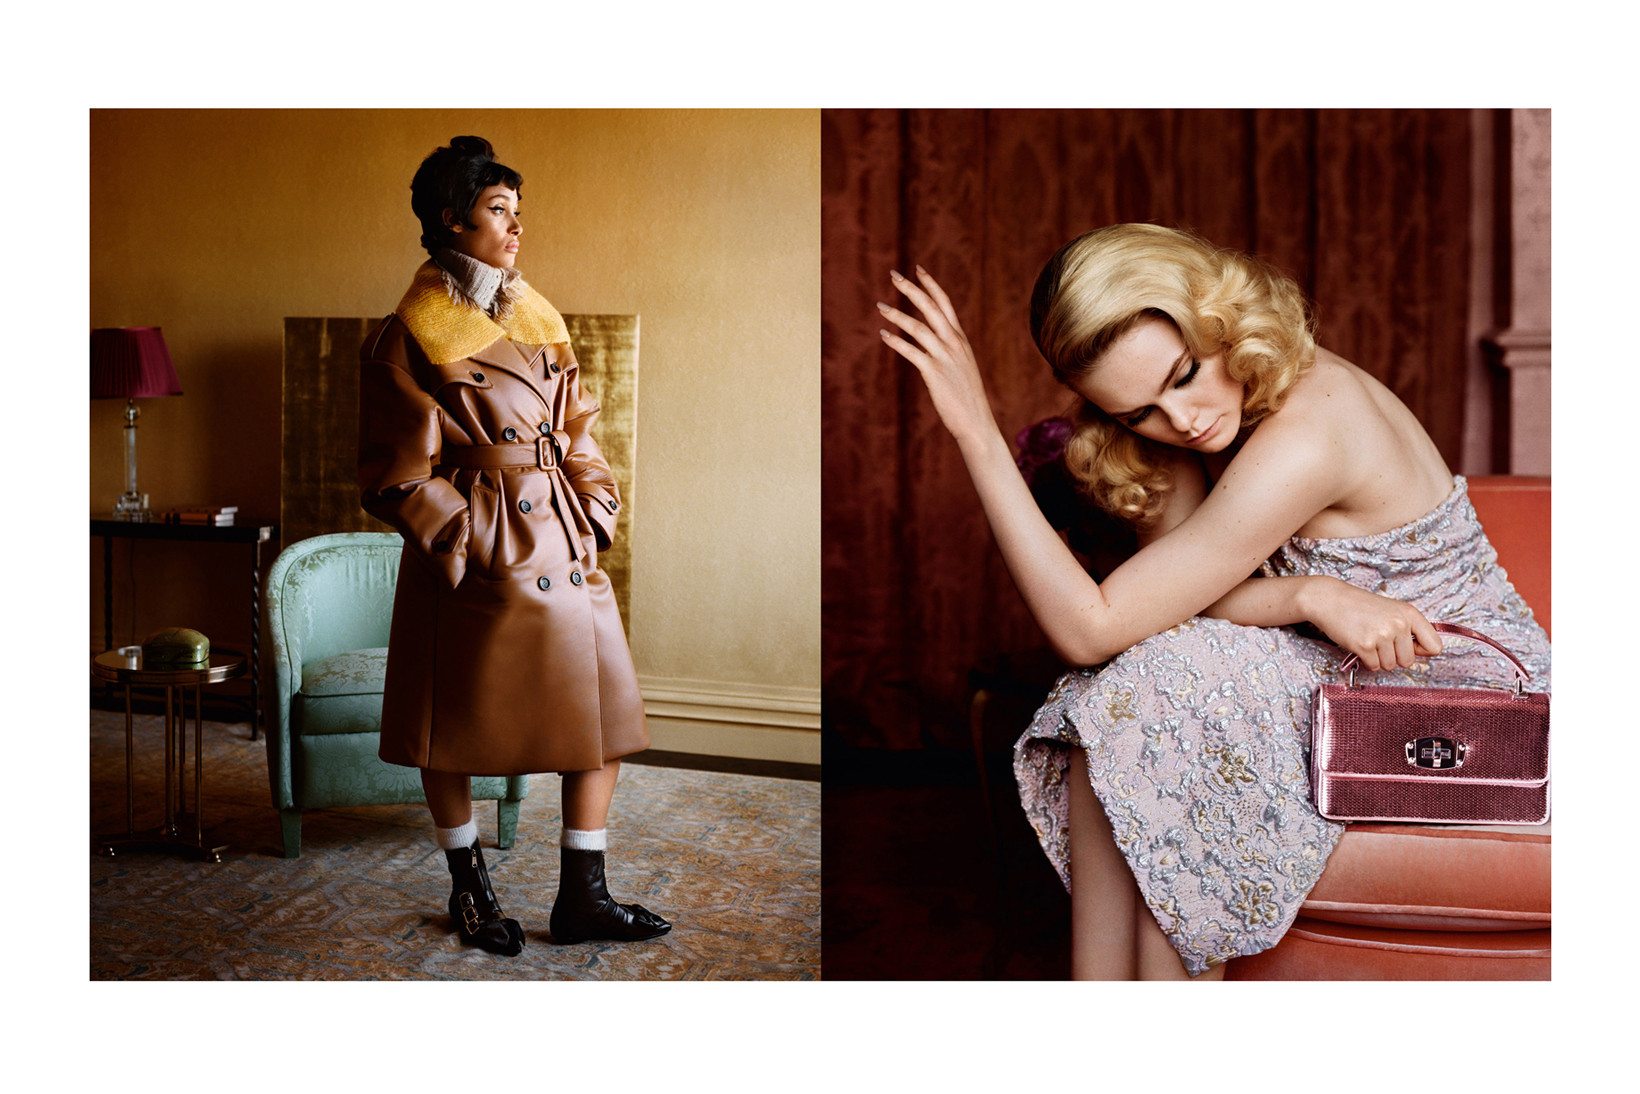 Miu Miu Fall/Winter 2018 Campaign Adwoa Aboah Coat Brown Yellow Elle Fanning Dress Pink